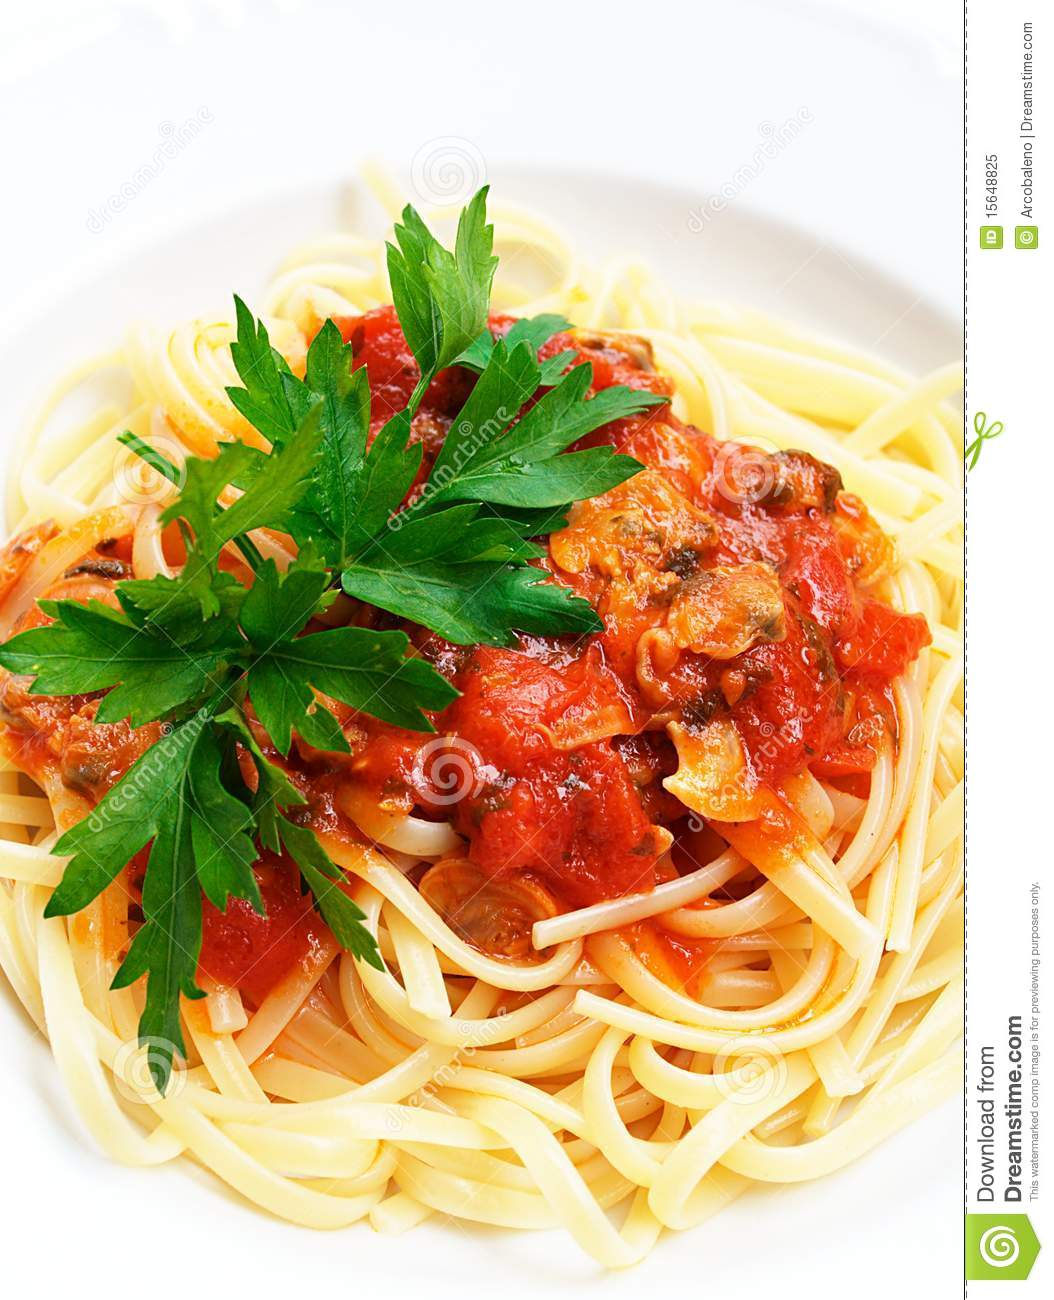 Linguine With Clams And Tomato Sauce Royalty Free Stock ...